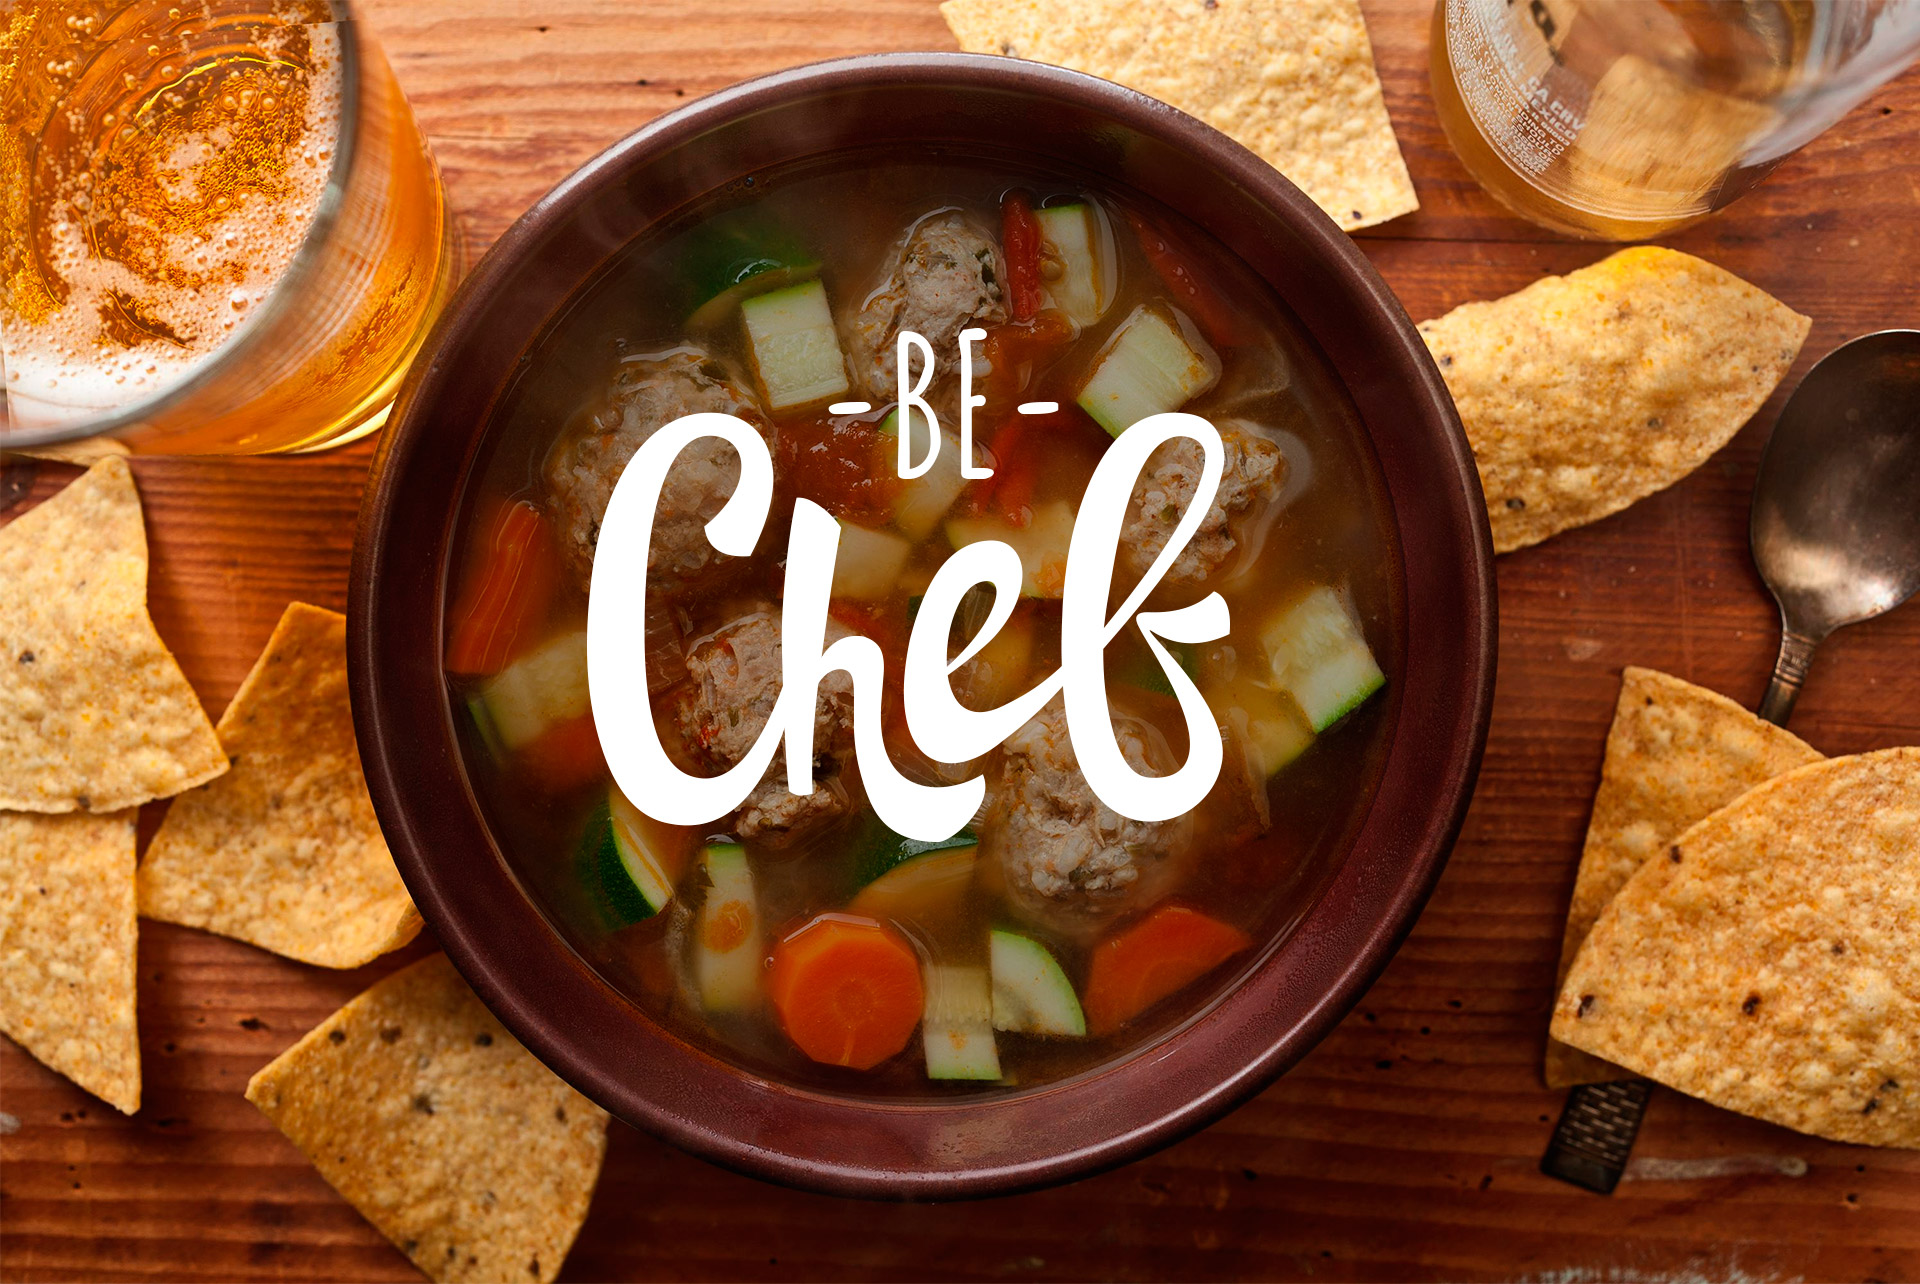 Be Chef